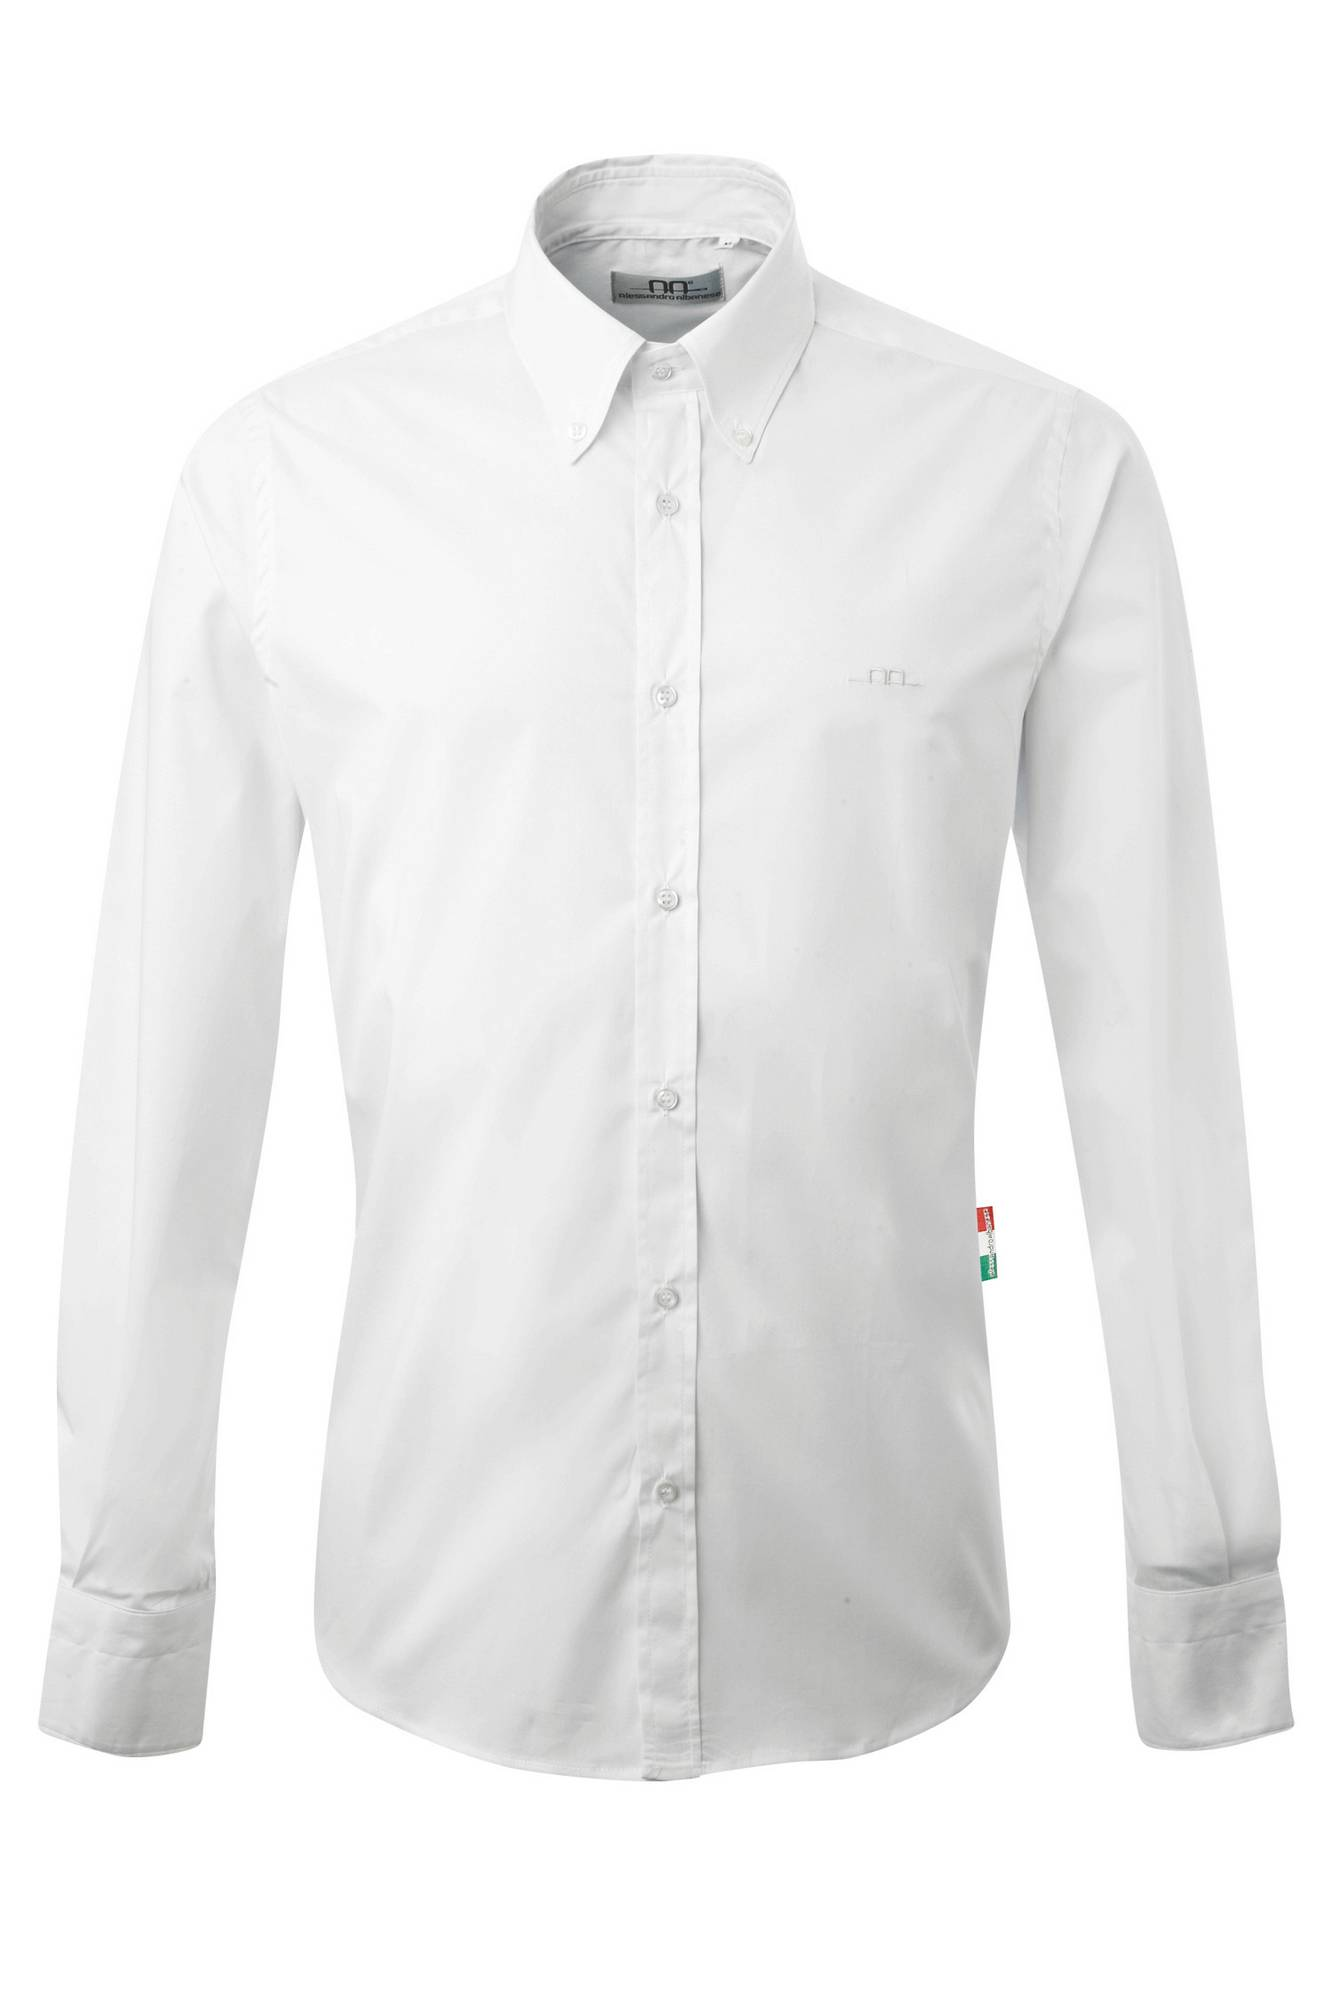 Alessandro Albanese 204 Mens Shirt Long Sleeve